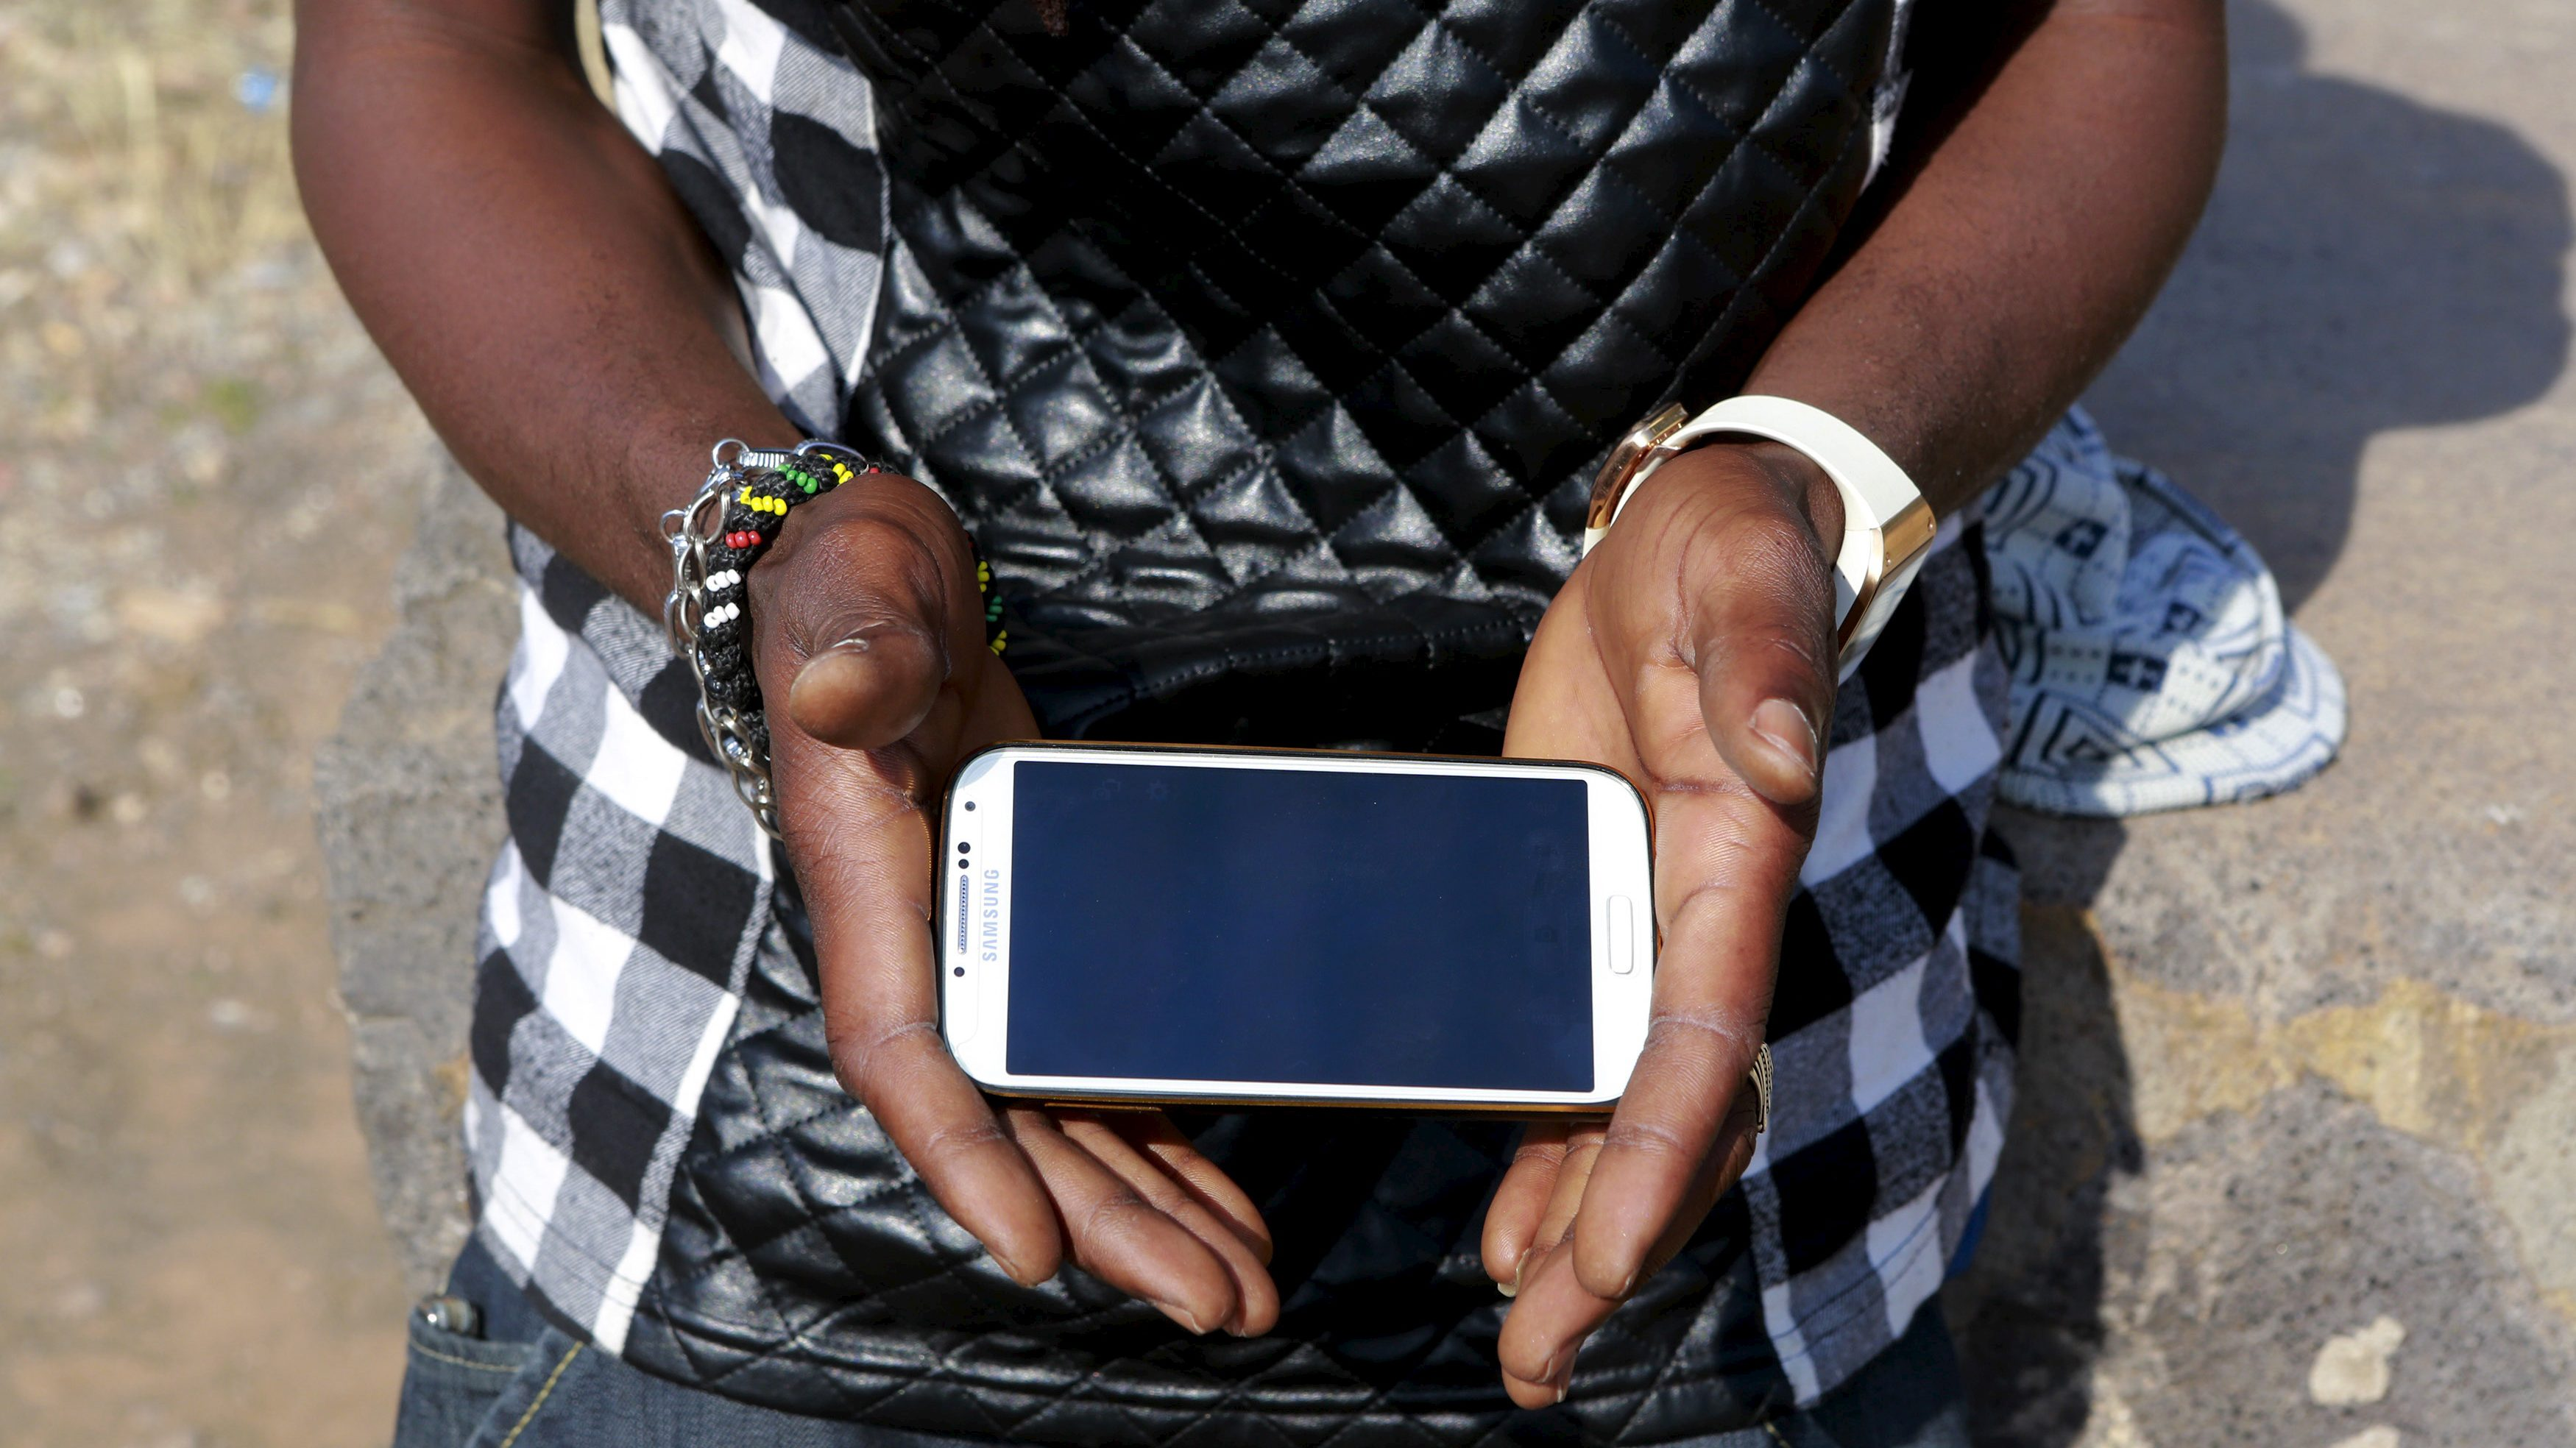 Said Youssef, 30, a rapper from Ghana, holds his mobile phone in the town of Oujda, northern Morocco, June 11, 2015. Youssef aims to cross the border into Spain's north African enclave of Melilla and realize his dream of becoming professional singer. REUTERS/Youssef Boudlal?     - RTX1H40S